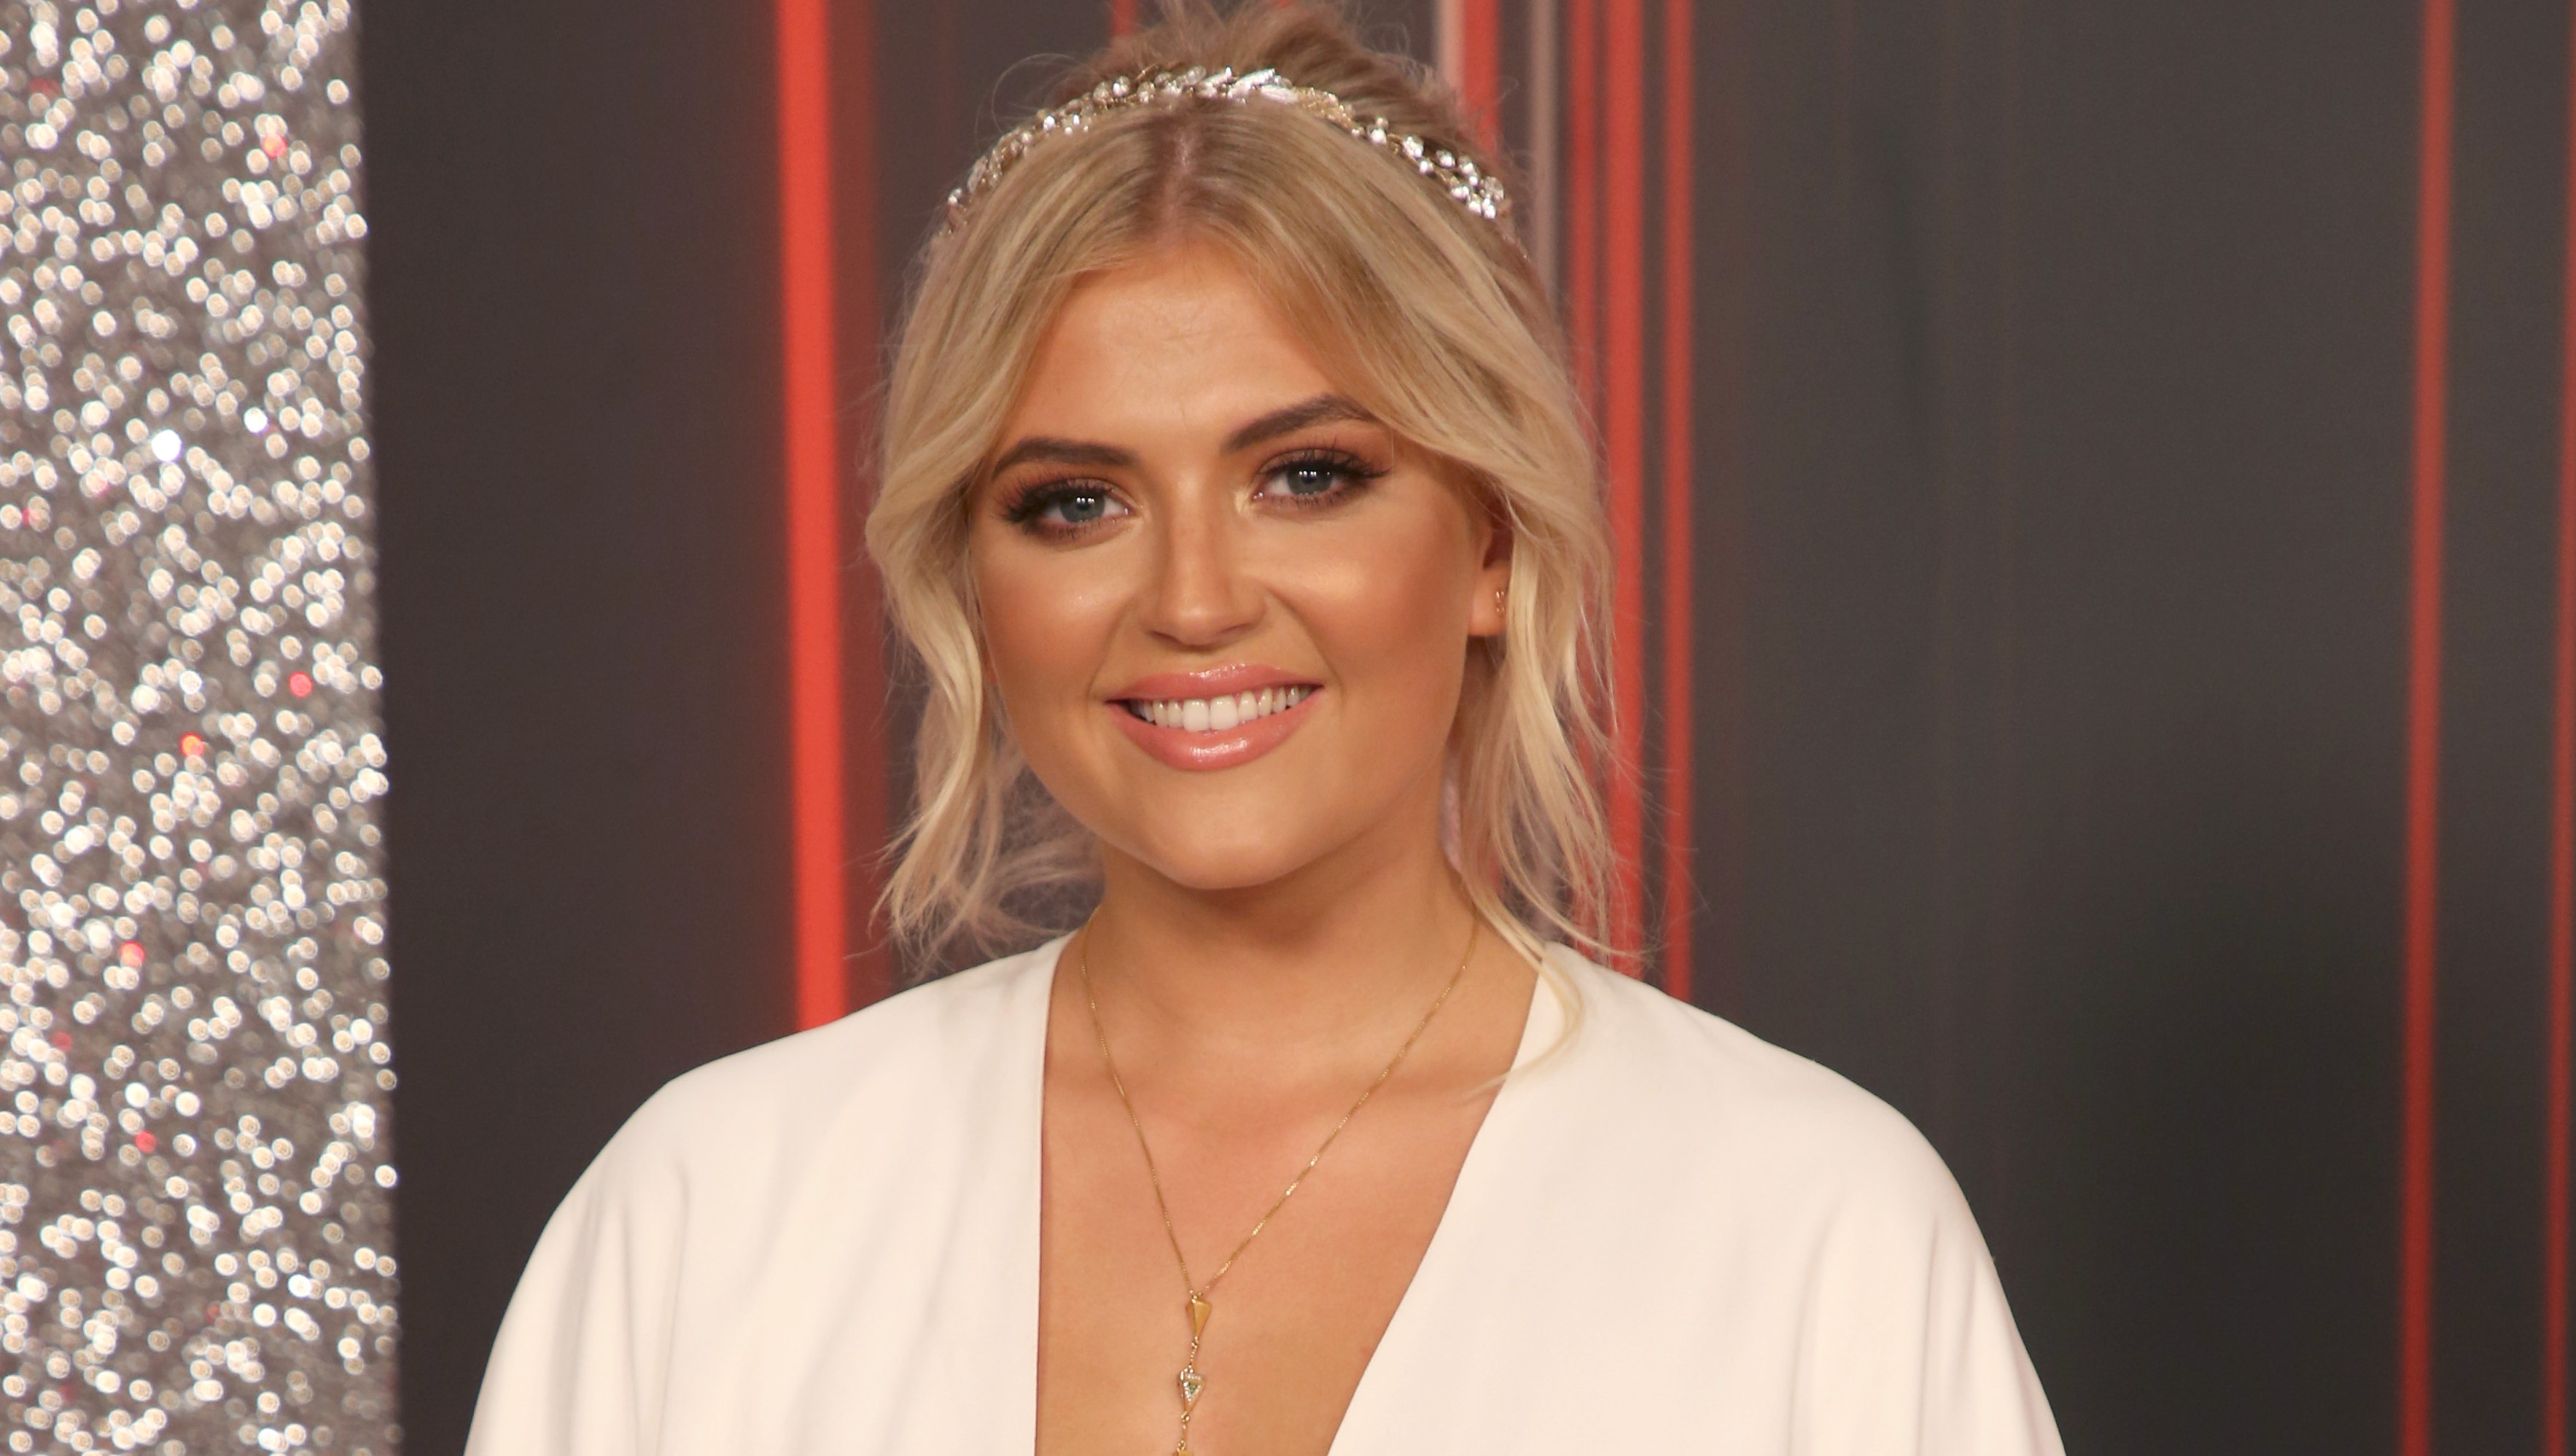 Celebrity X Factor bosses 'desperately want Corrie's Lucy Fallon to appear on show'